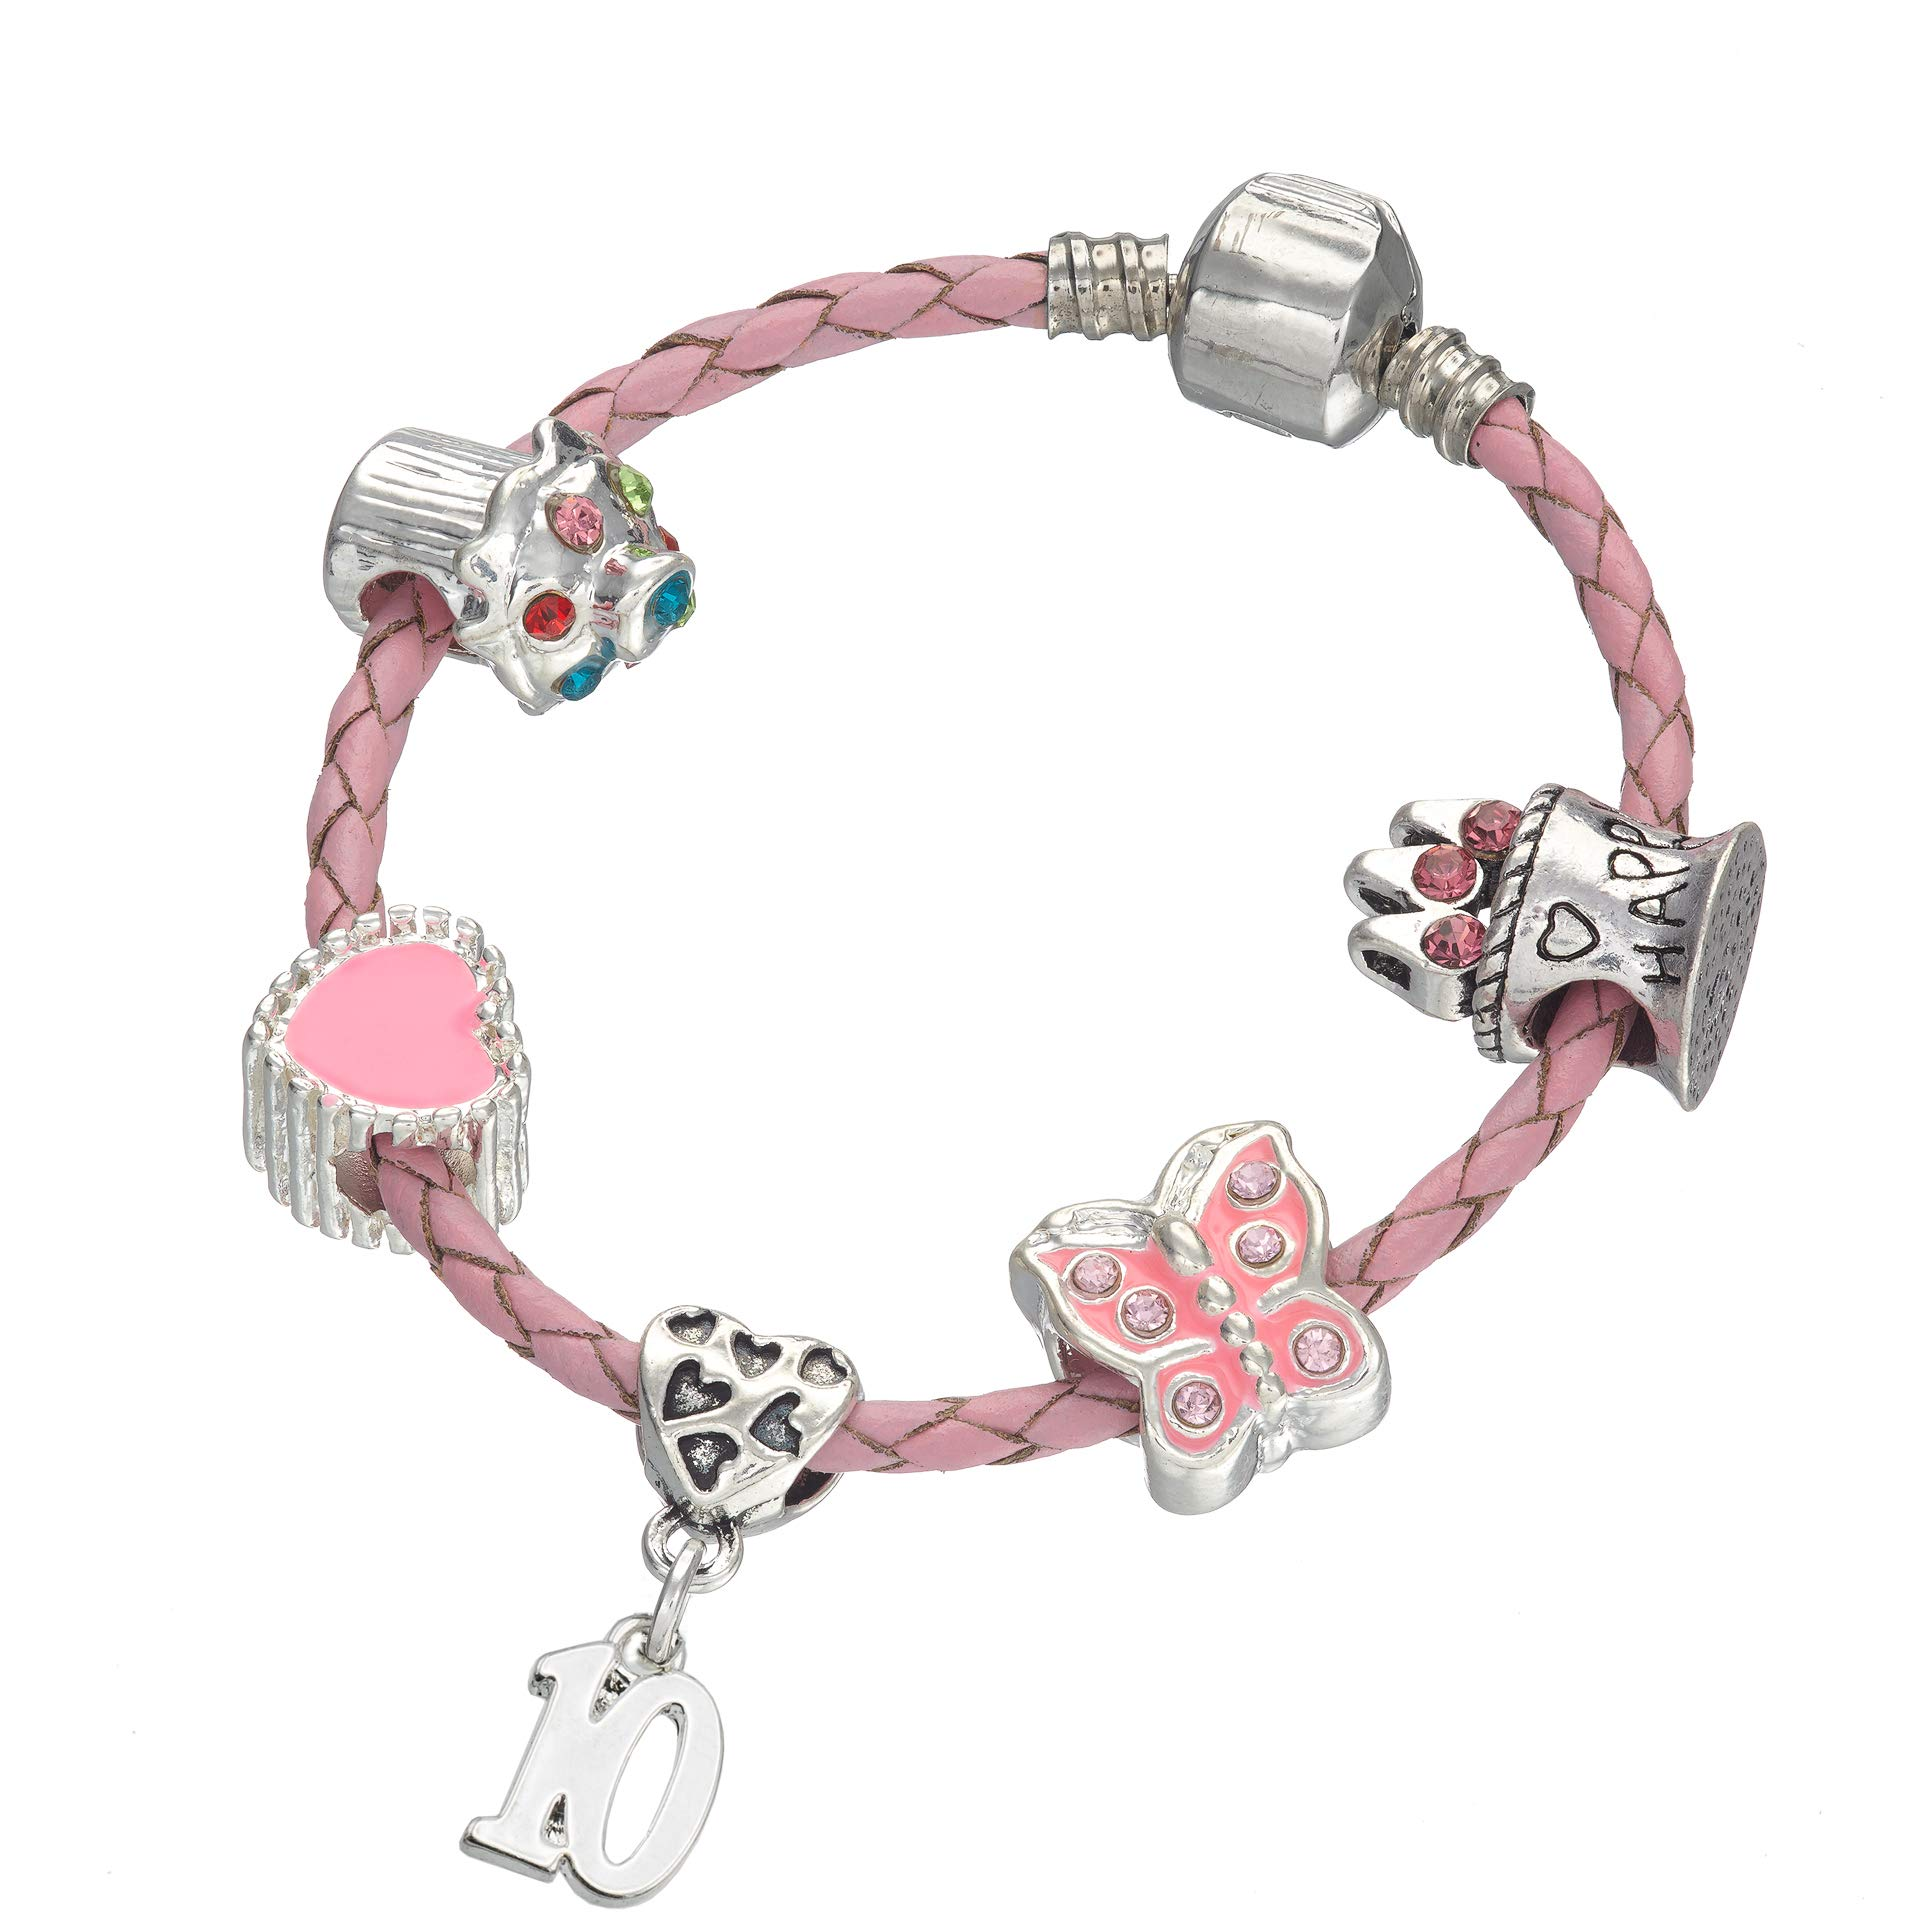 Children's Pink Leather Happy 10th Birthday Charm Bracelet with Gift Box – Girl's & Children's Birthday Gift Jewellery